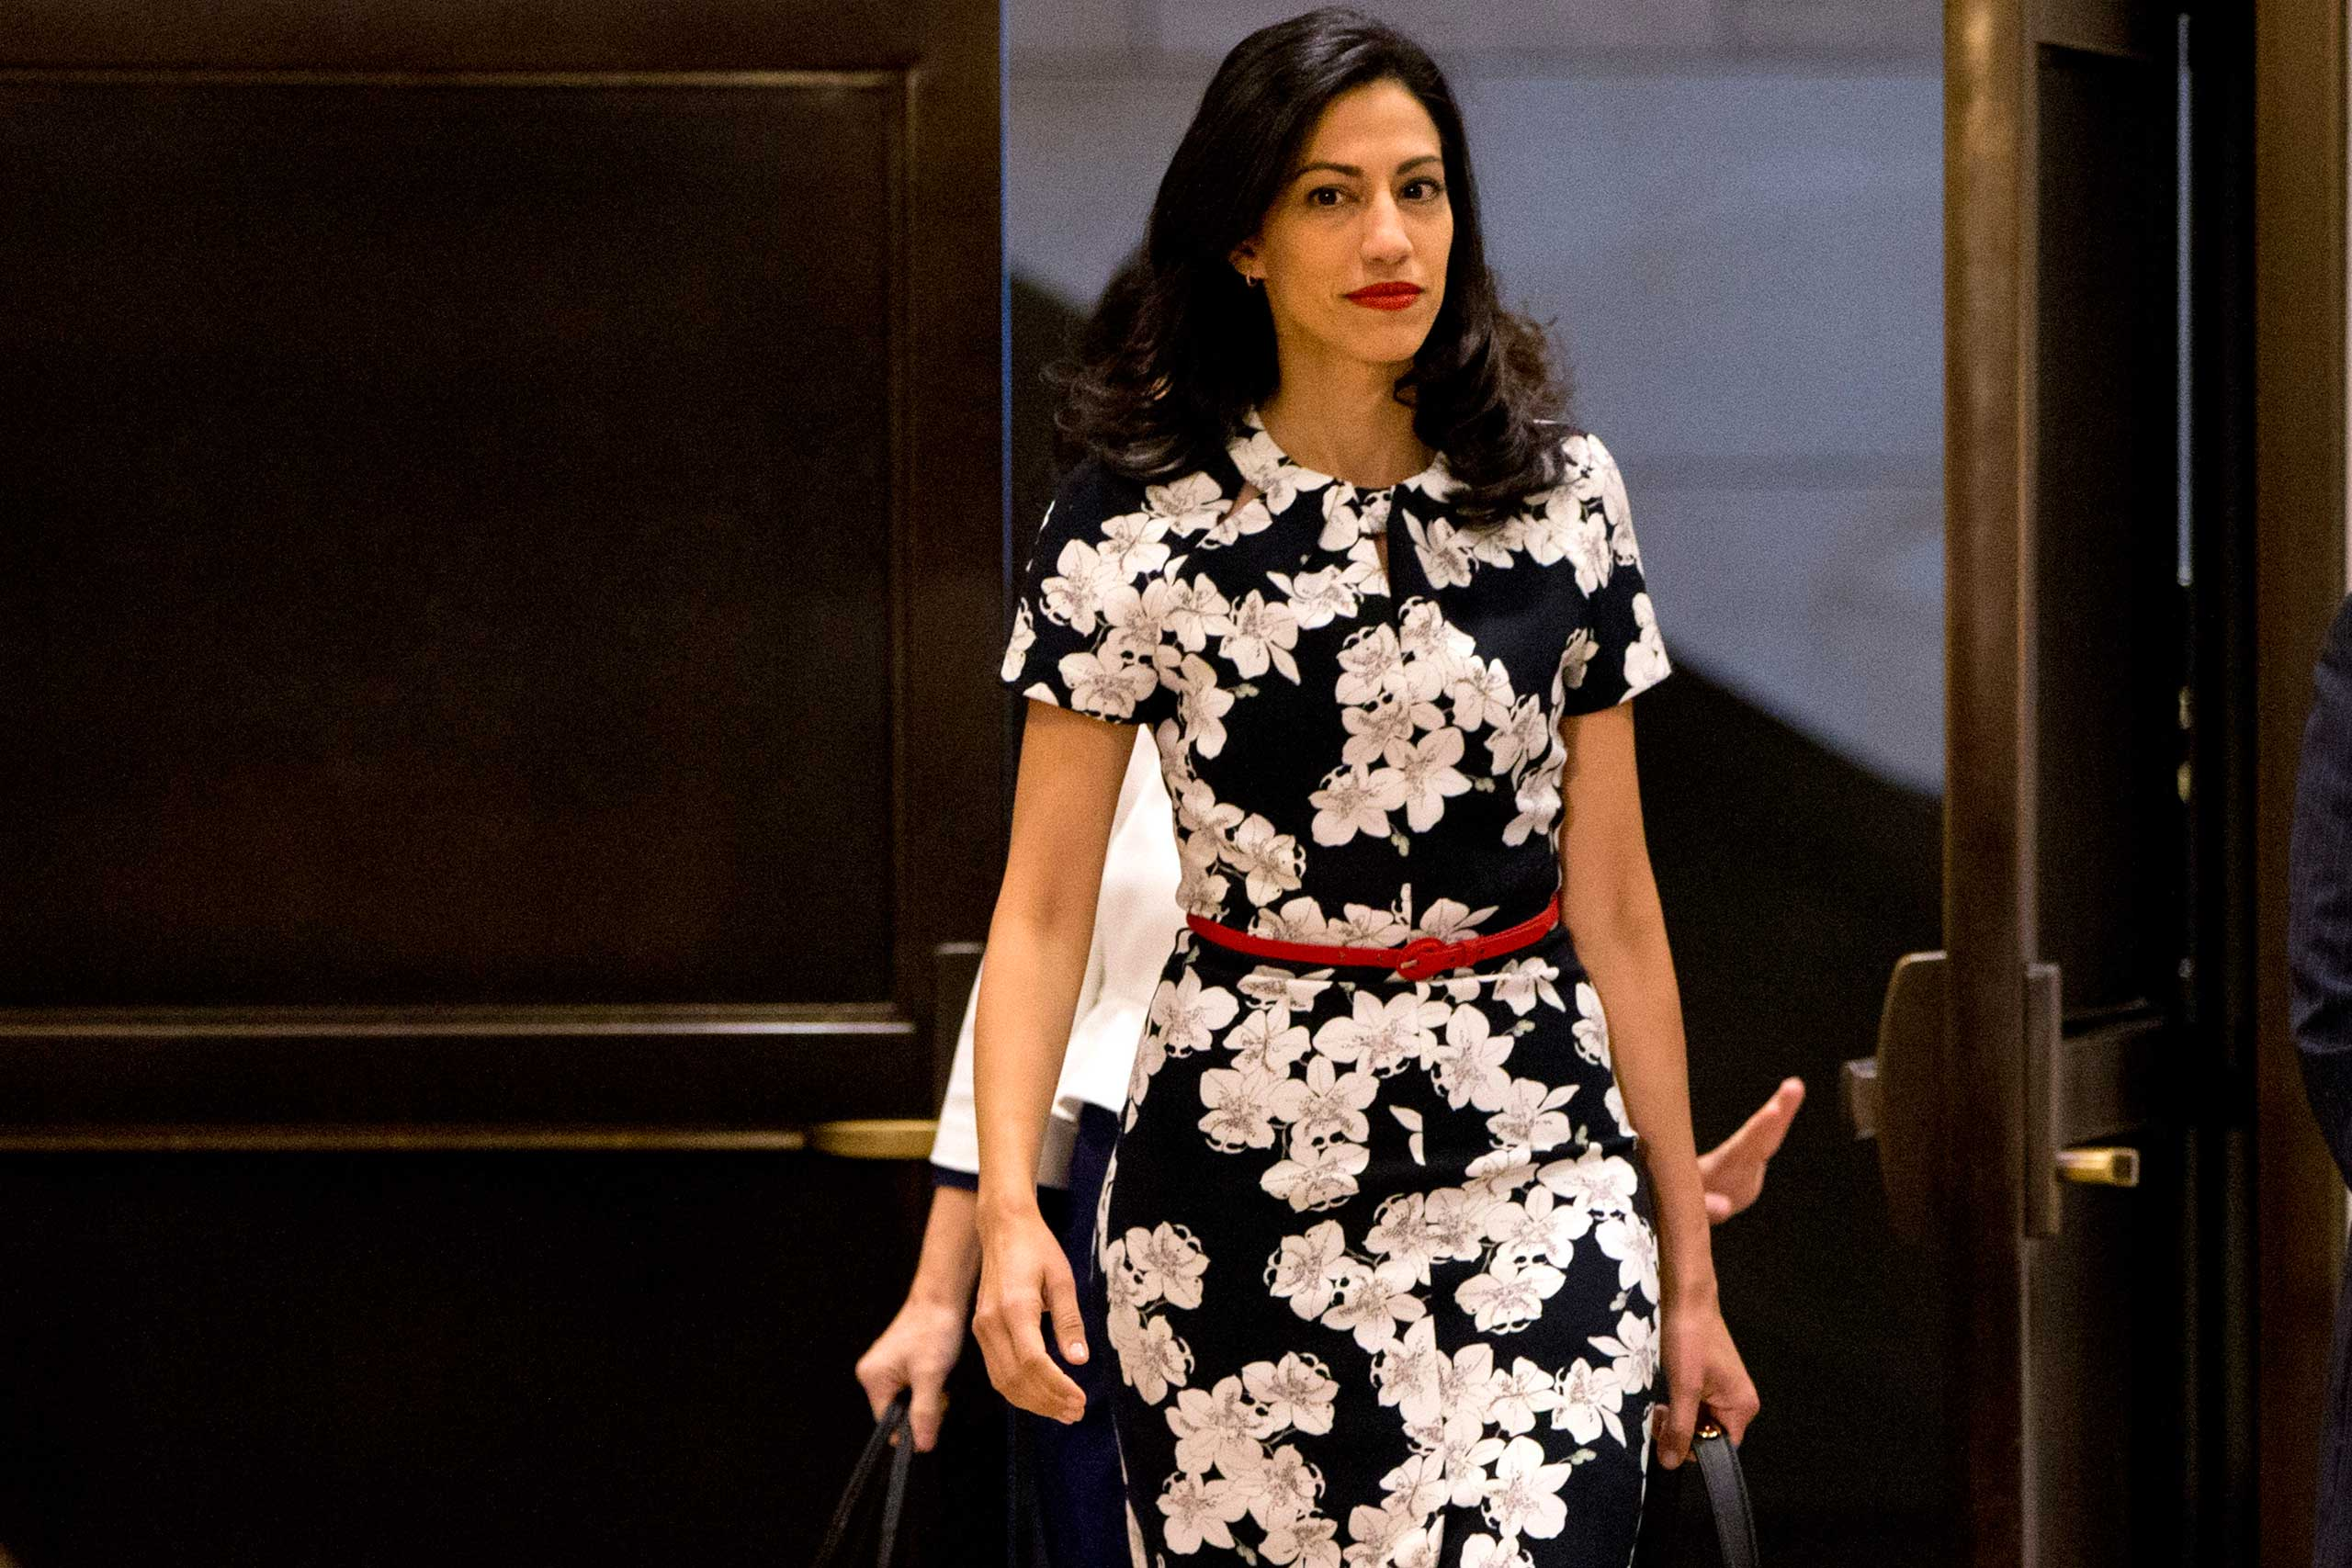 Huma Abedin,  a close aide to Hillary Rodham Clinton arrives on Capitol Hill in Washington to testify before a closed-door hearing of the House Benghazi Committee investigating the deadly attacks in Benghazi, Libya, Oct. 16, 2015.